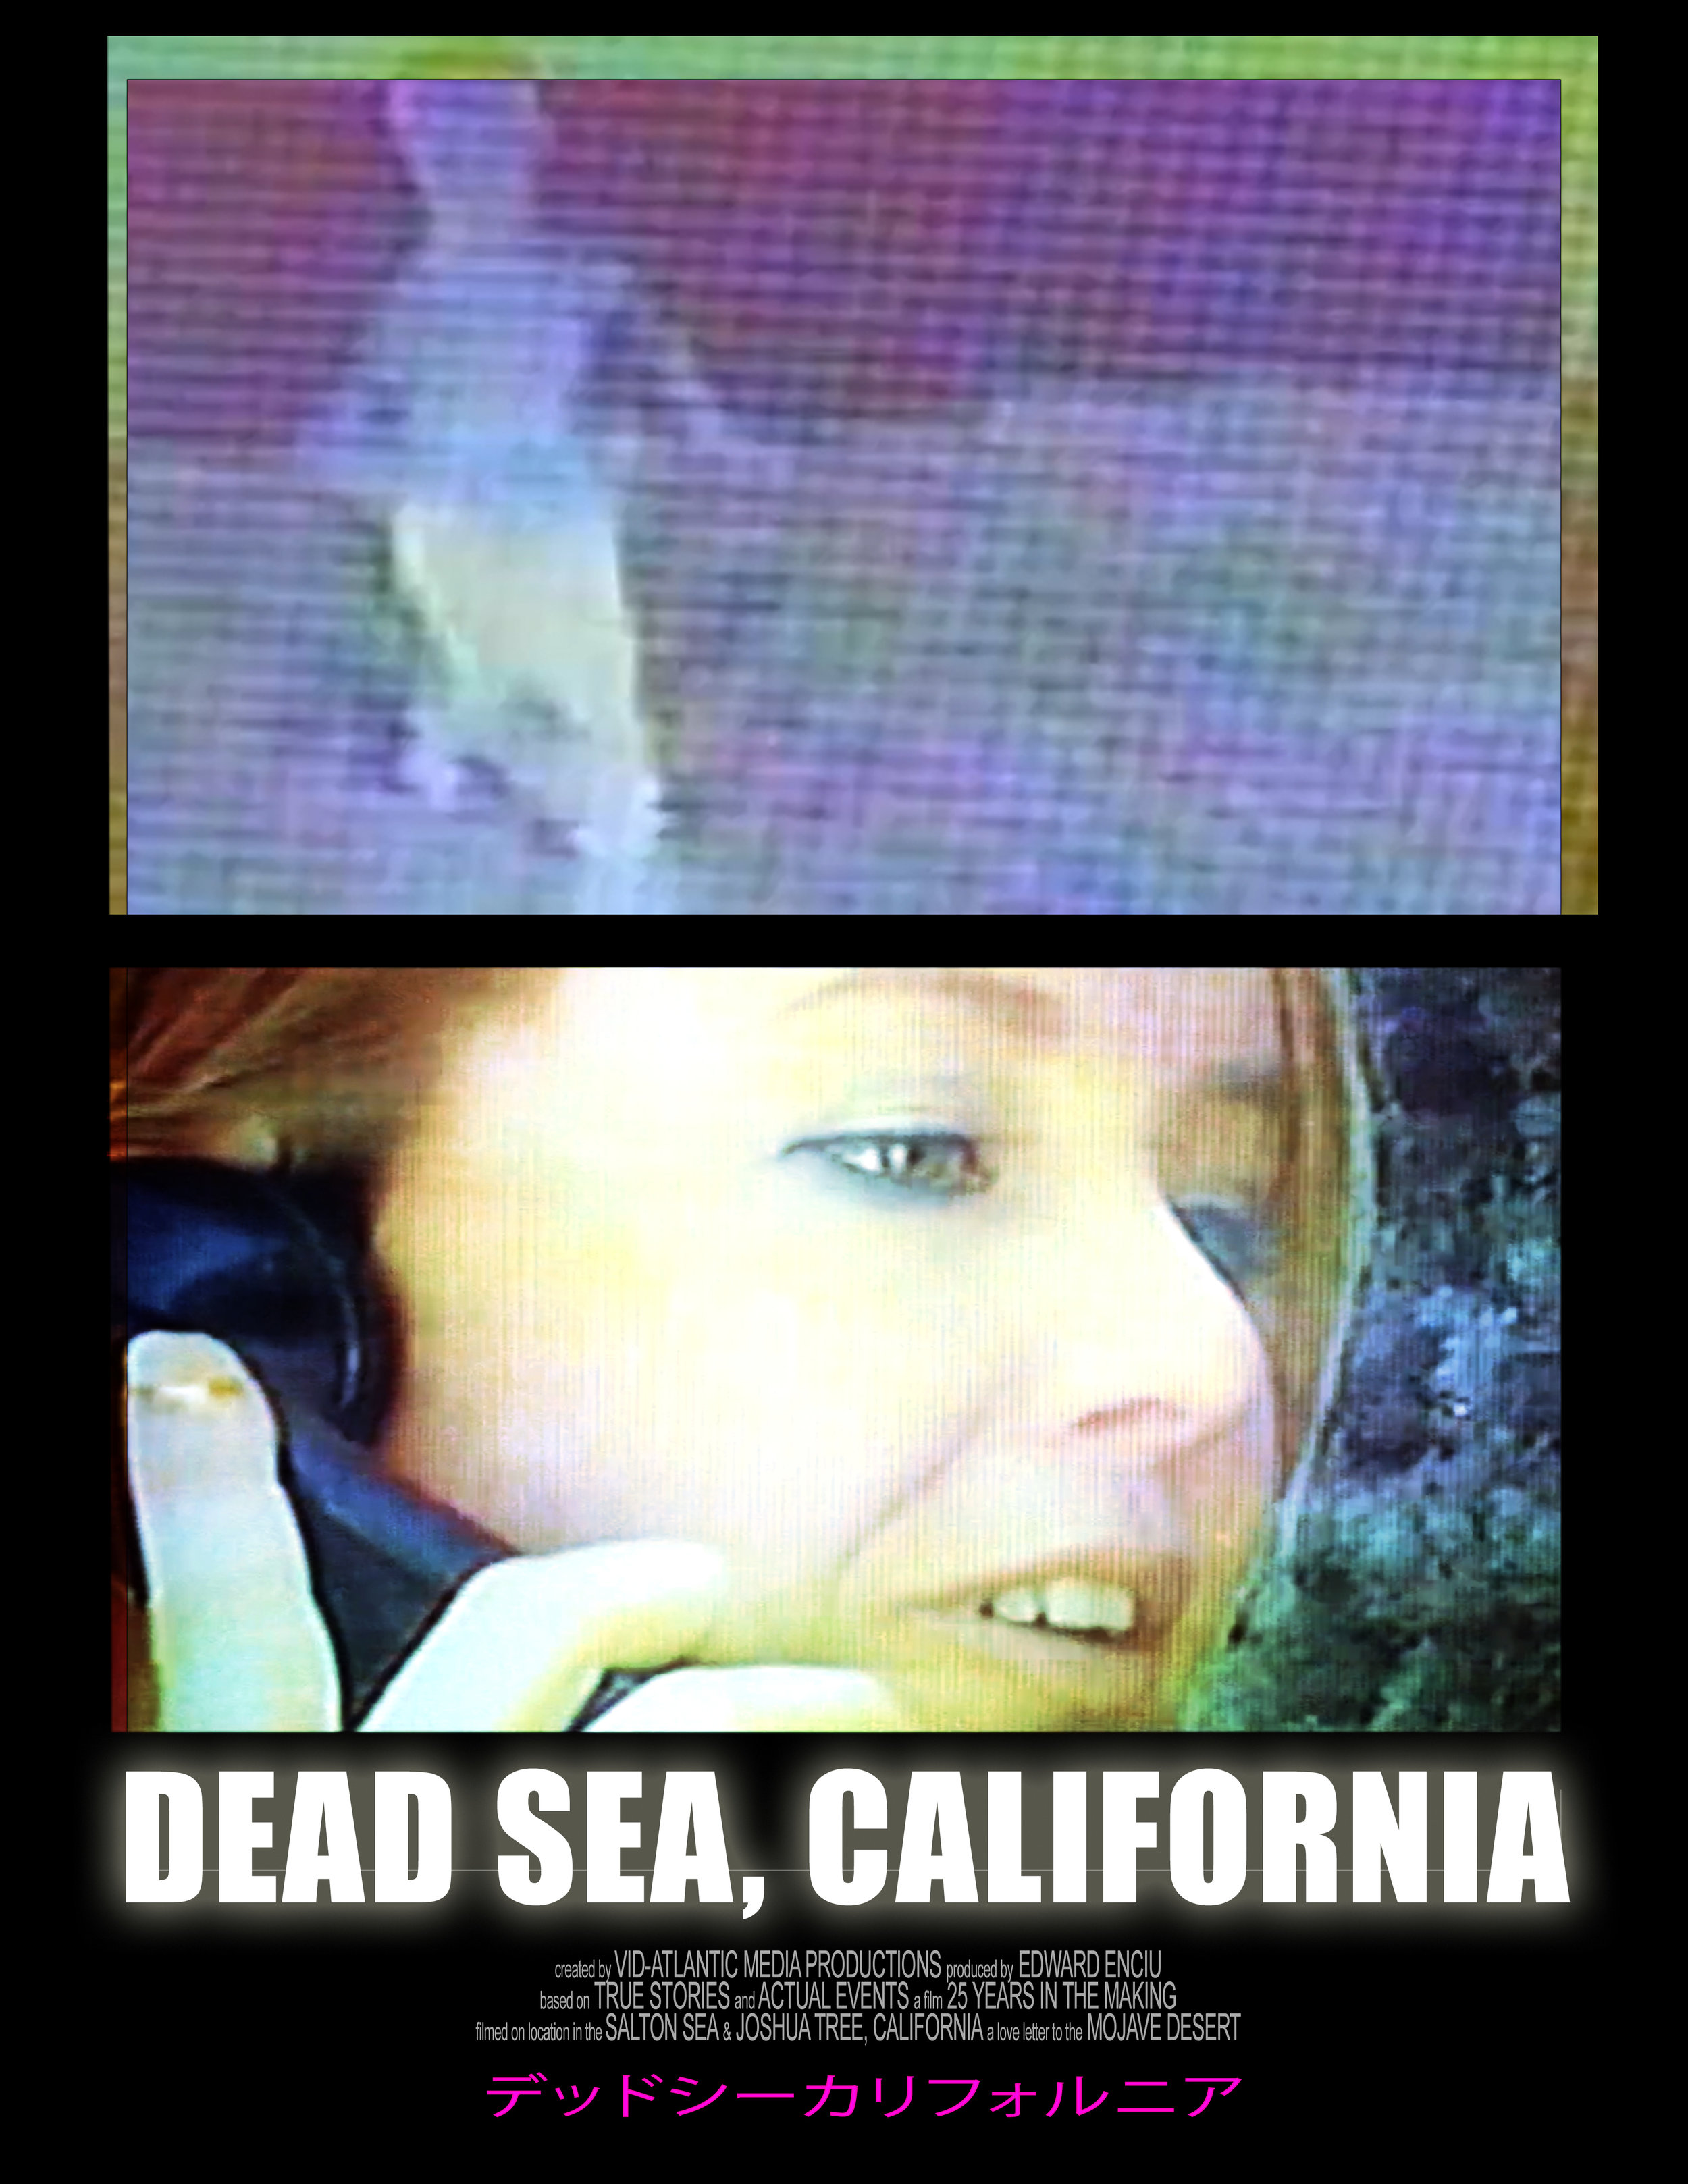 Dead Sea Calif poster PHONE GIRL 092017.jpg